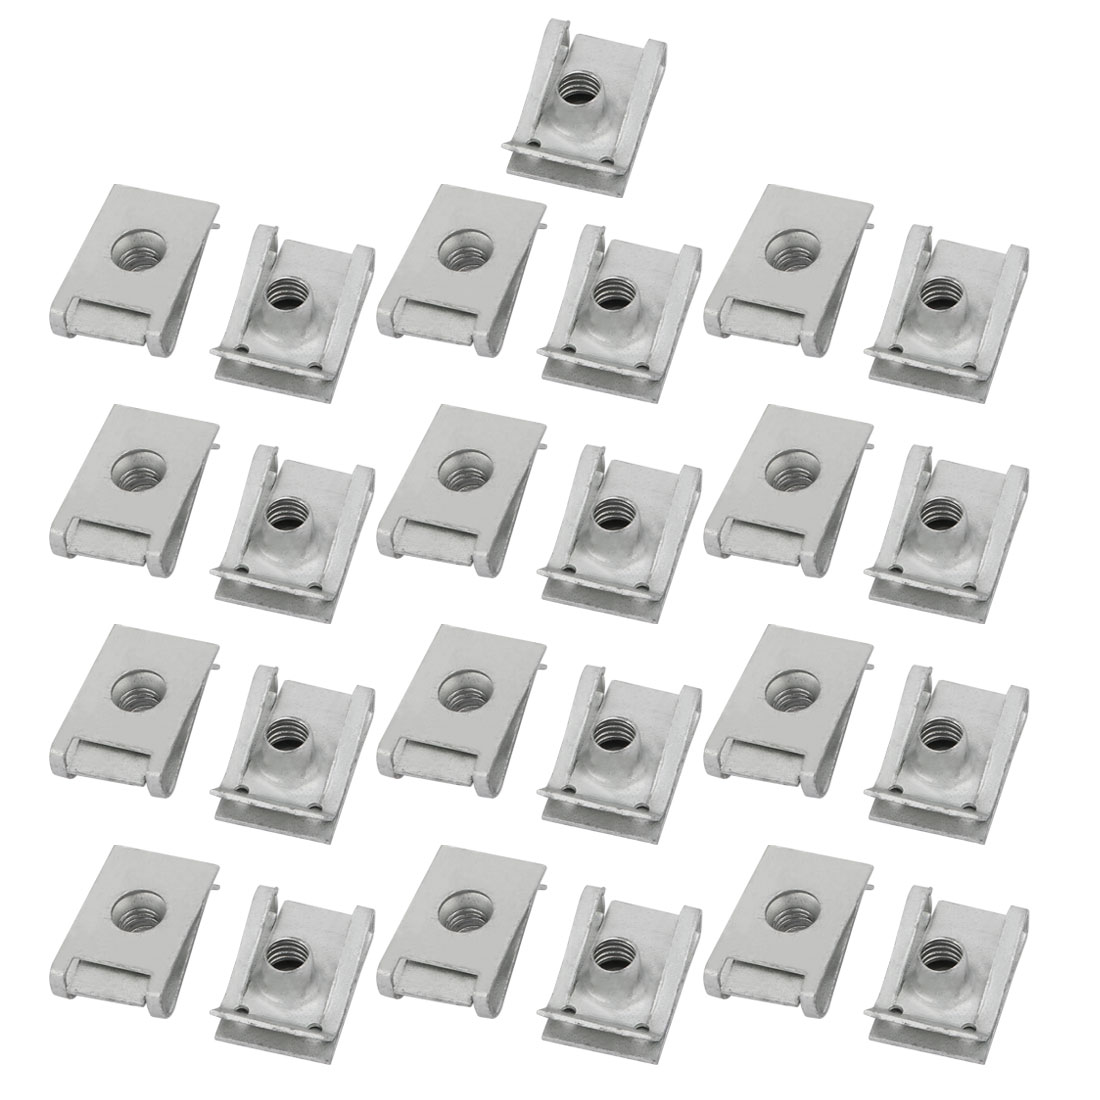 M6 24mmx16mm 65Mn Spring Steel White Zinc Plated Extruded U Nut Clip 25pcs